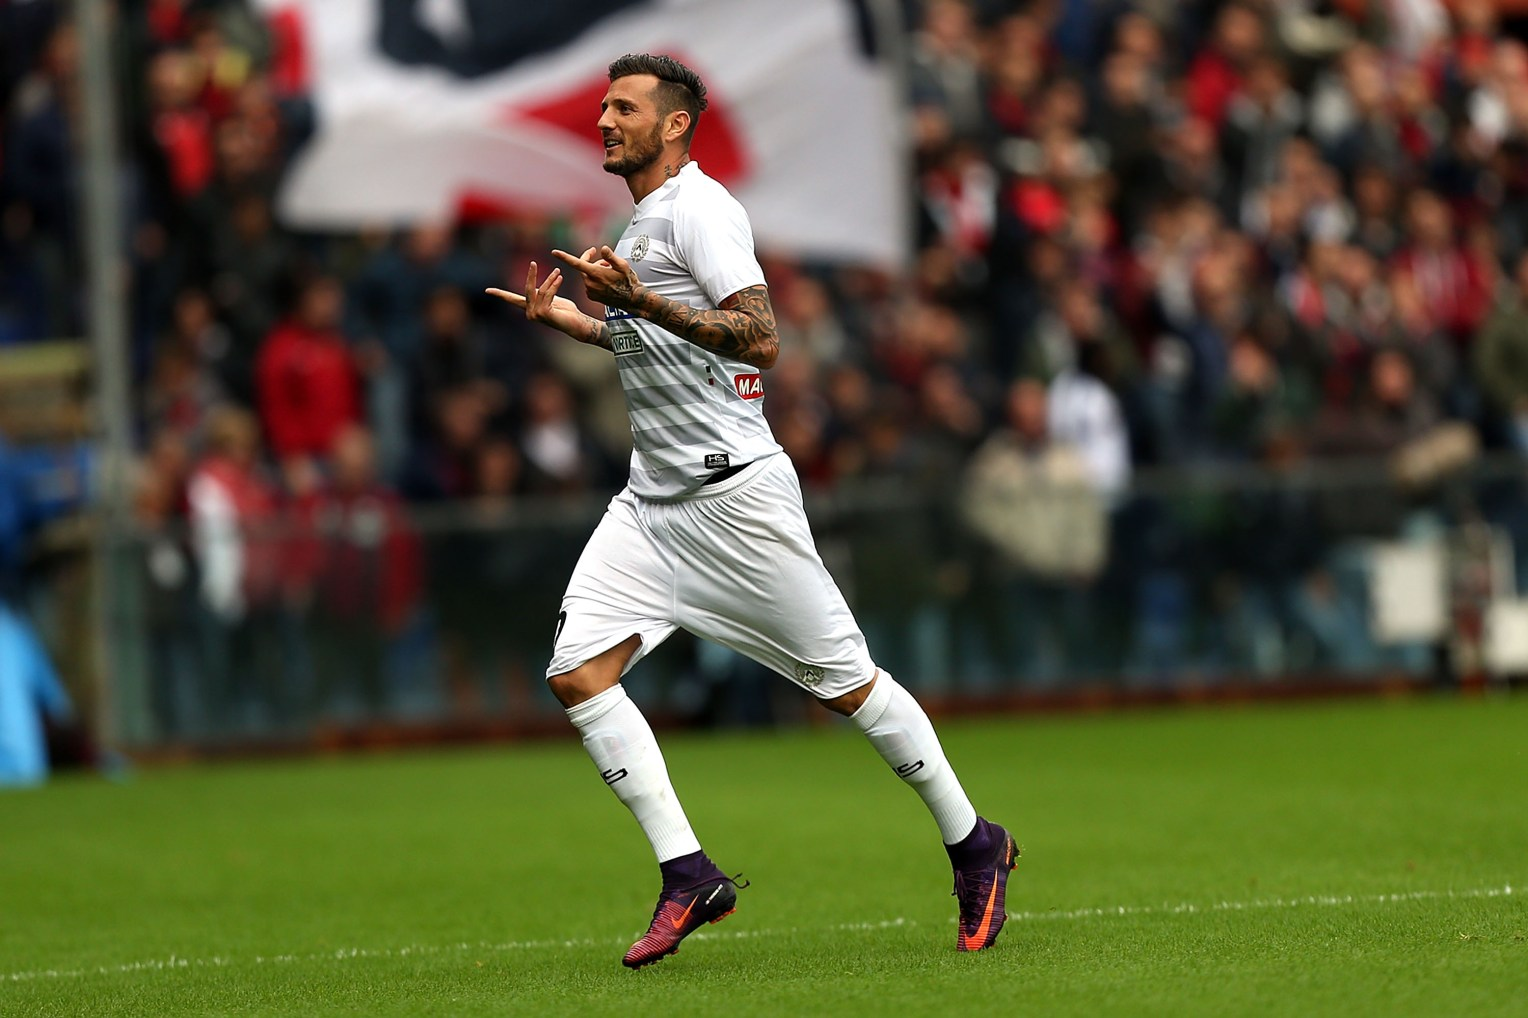 GENOA, ITALY - NOVEMBER 06: Cyril Thereau of Udinese Calcio celebrates after scoring a goal during the Serie A match between Genoa CFC and Udinese Calcio at Stadio Luigi Ferraris on November 6, 2016 in Genoa, Italy. (Photo by Gabriele Maltinti/Getty Images)